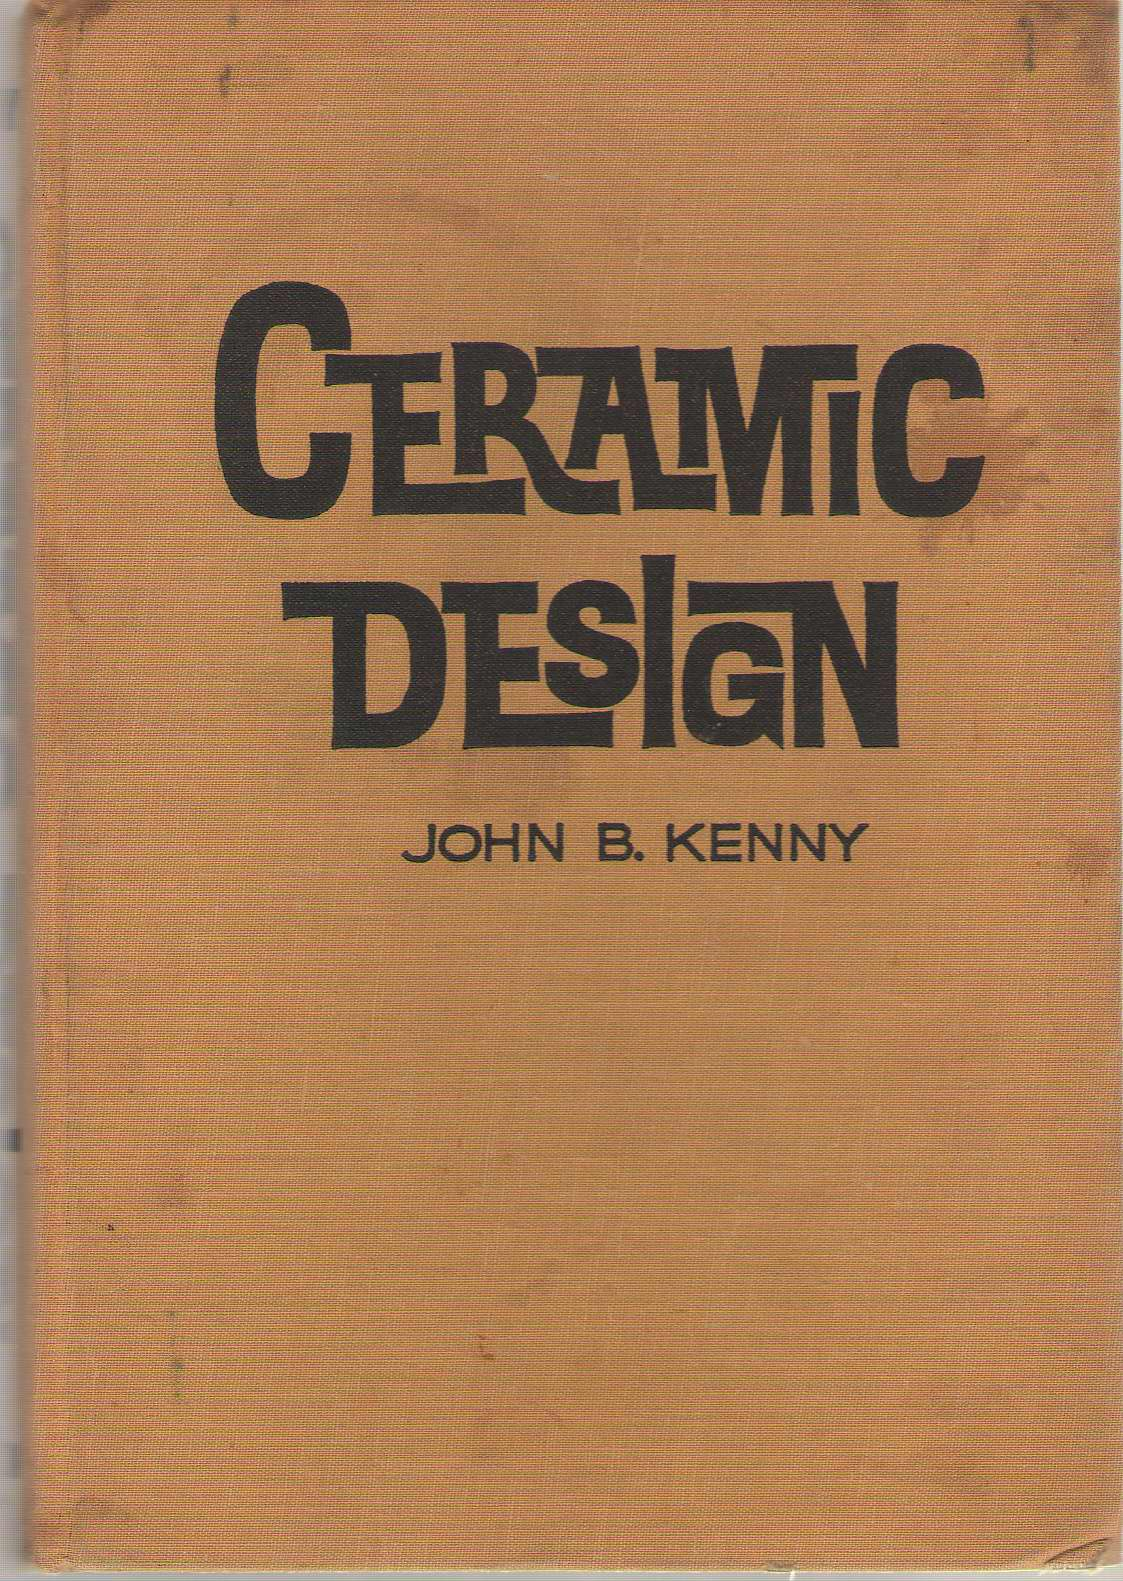 Ceramic Design, Kenny, John B.